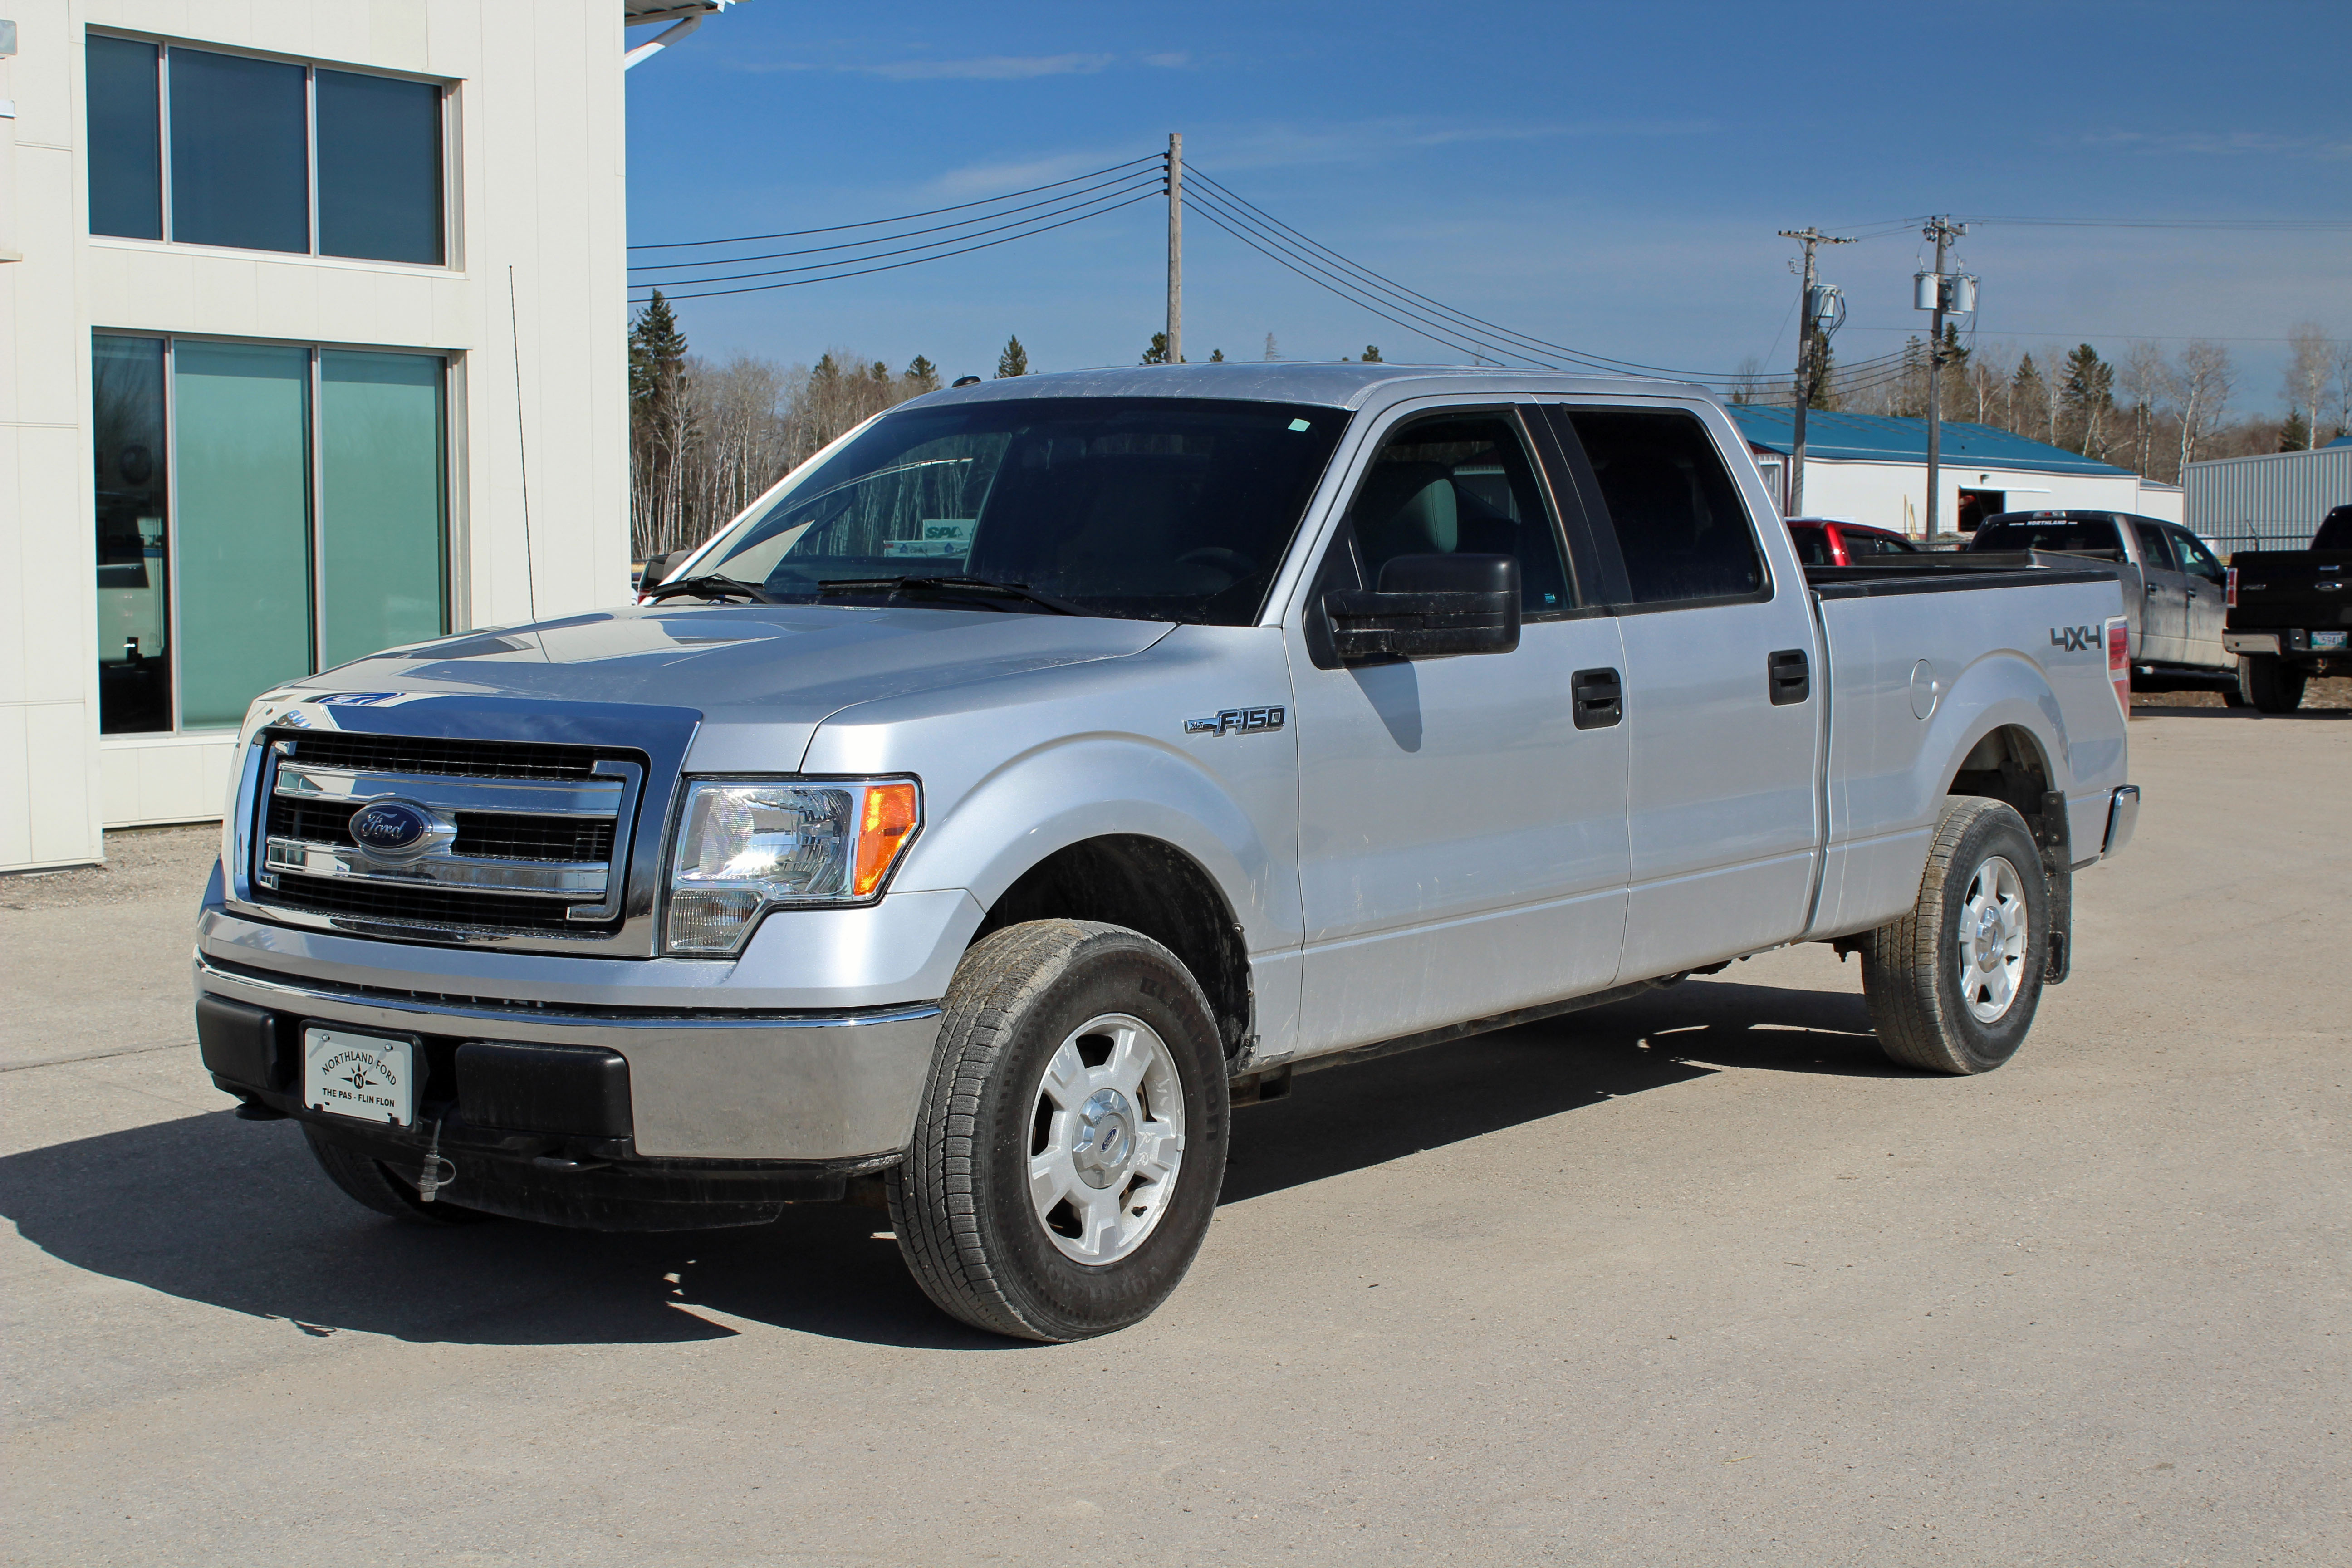 used car pre vehicle raptor dealer dealership owned near on vehicles kaladar f svt area inventory ford me